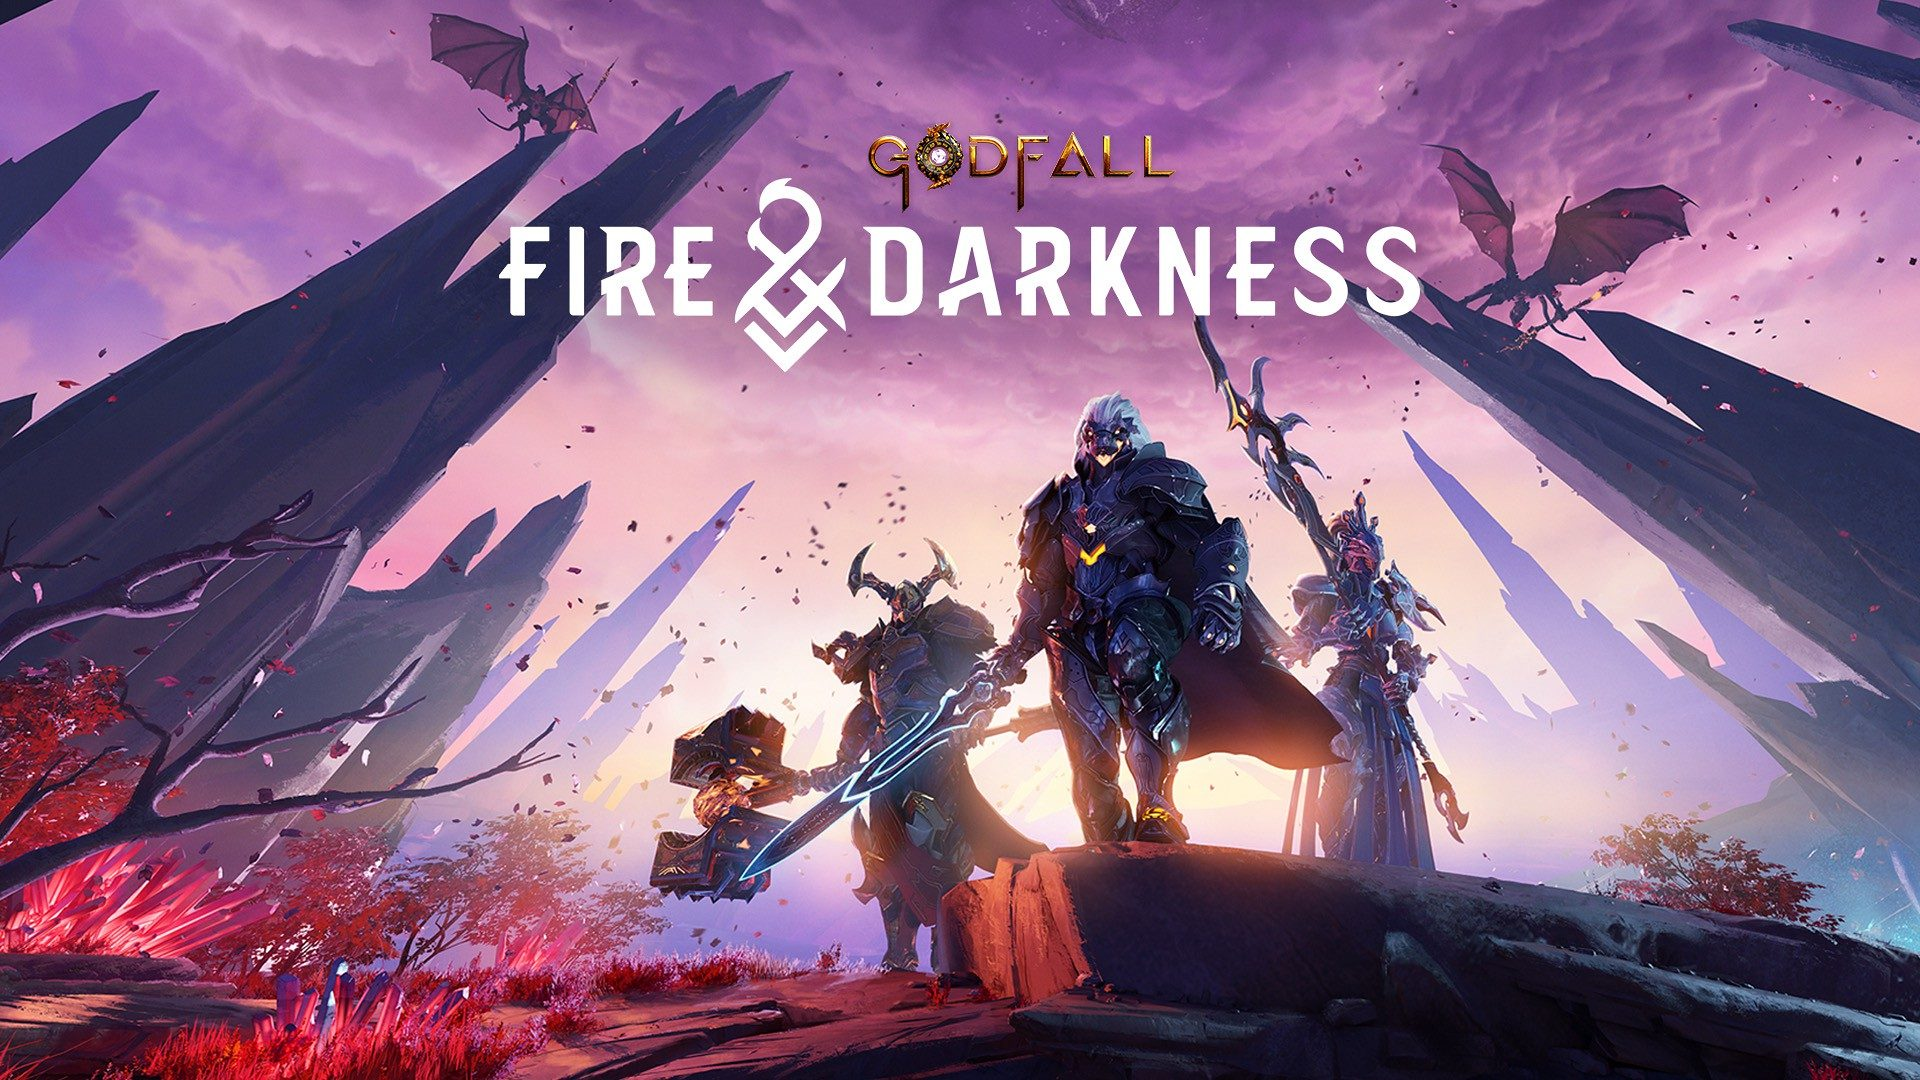 godfall-will-come-to-ps4-august-10,-along-with-new-fireplace-&-darkness-enlargement